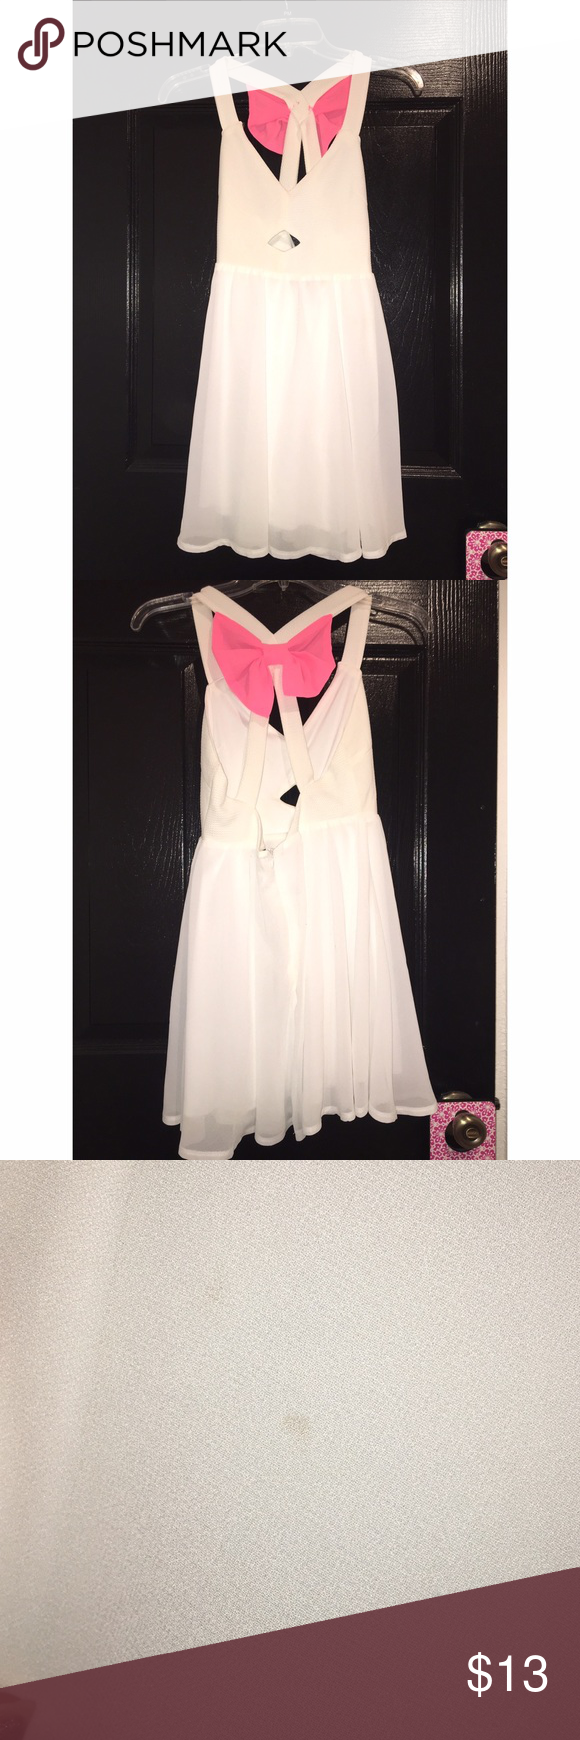 Bow dress NWOT White bow dress with neon pink bow . Brand new never worn. But somehow has small small stain on back but can barely see it( smaller than pinky nail) Price FIRM since brand new Dresses Mini